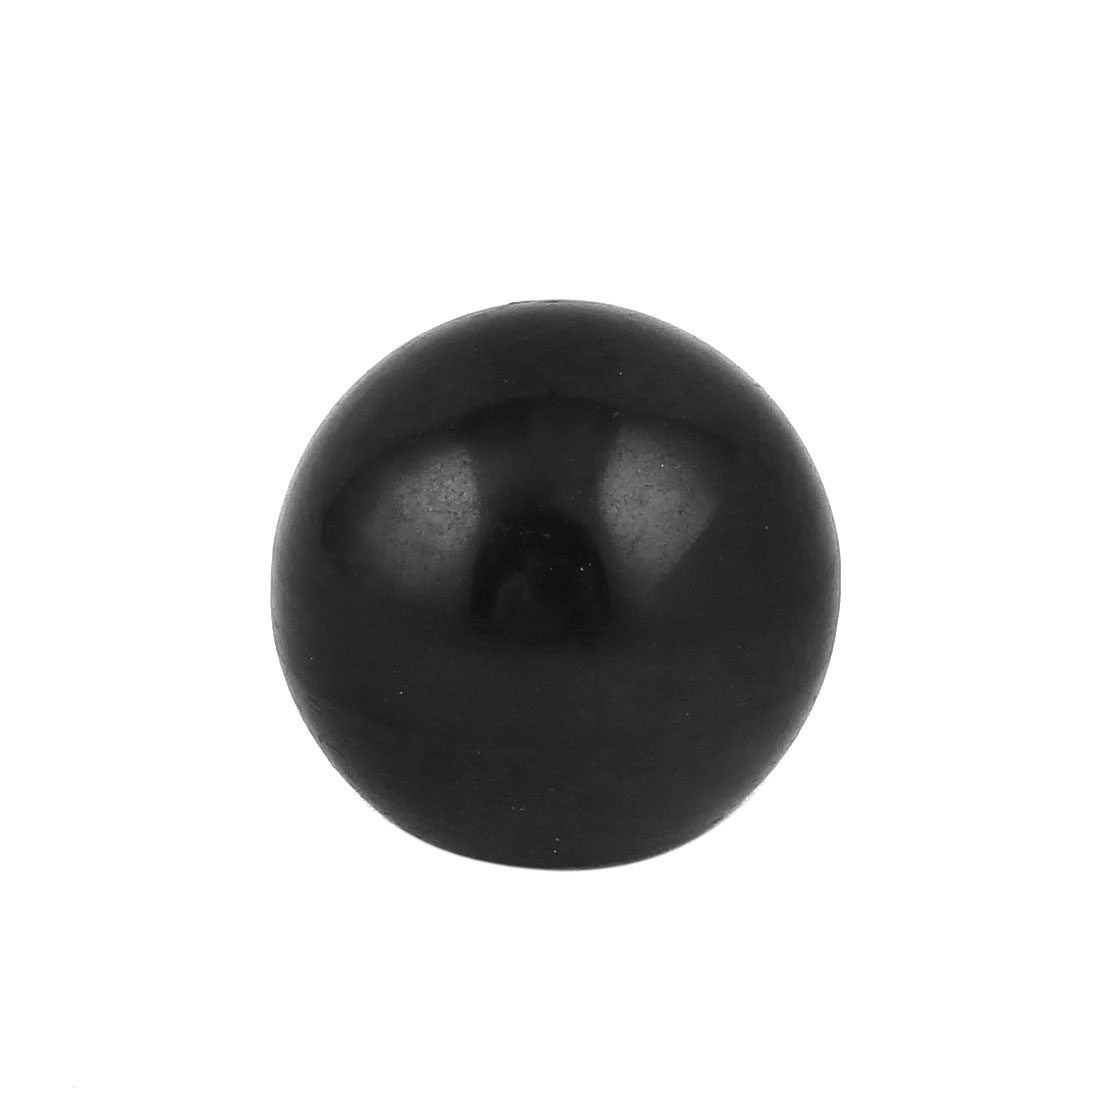 Black Plastic Ball Shape Joystick Machine Control Handle Knob for Lathe Tractor